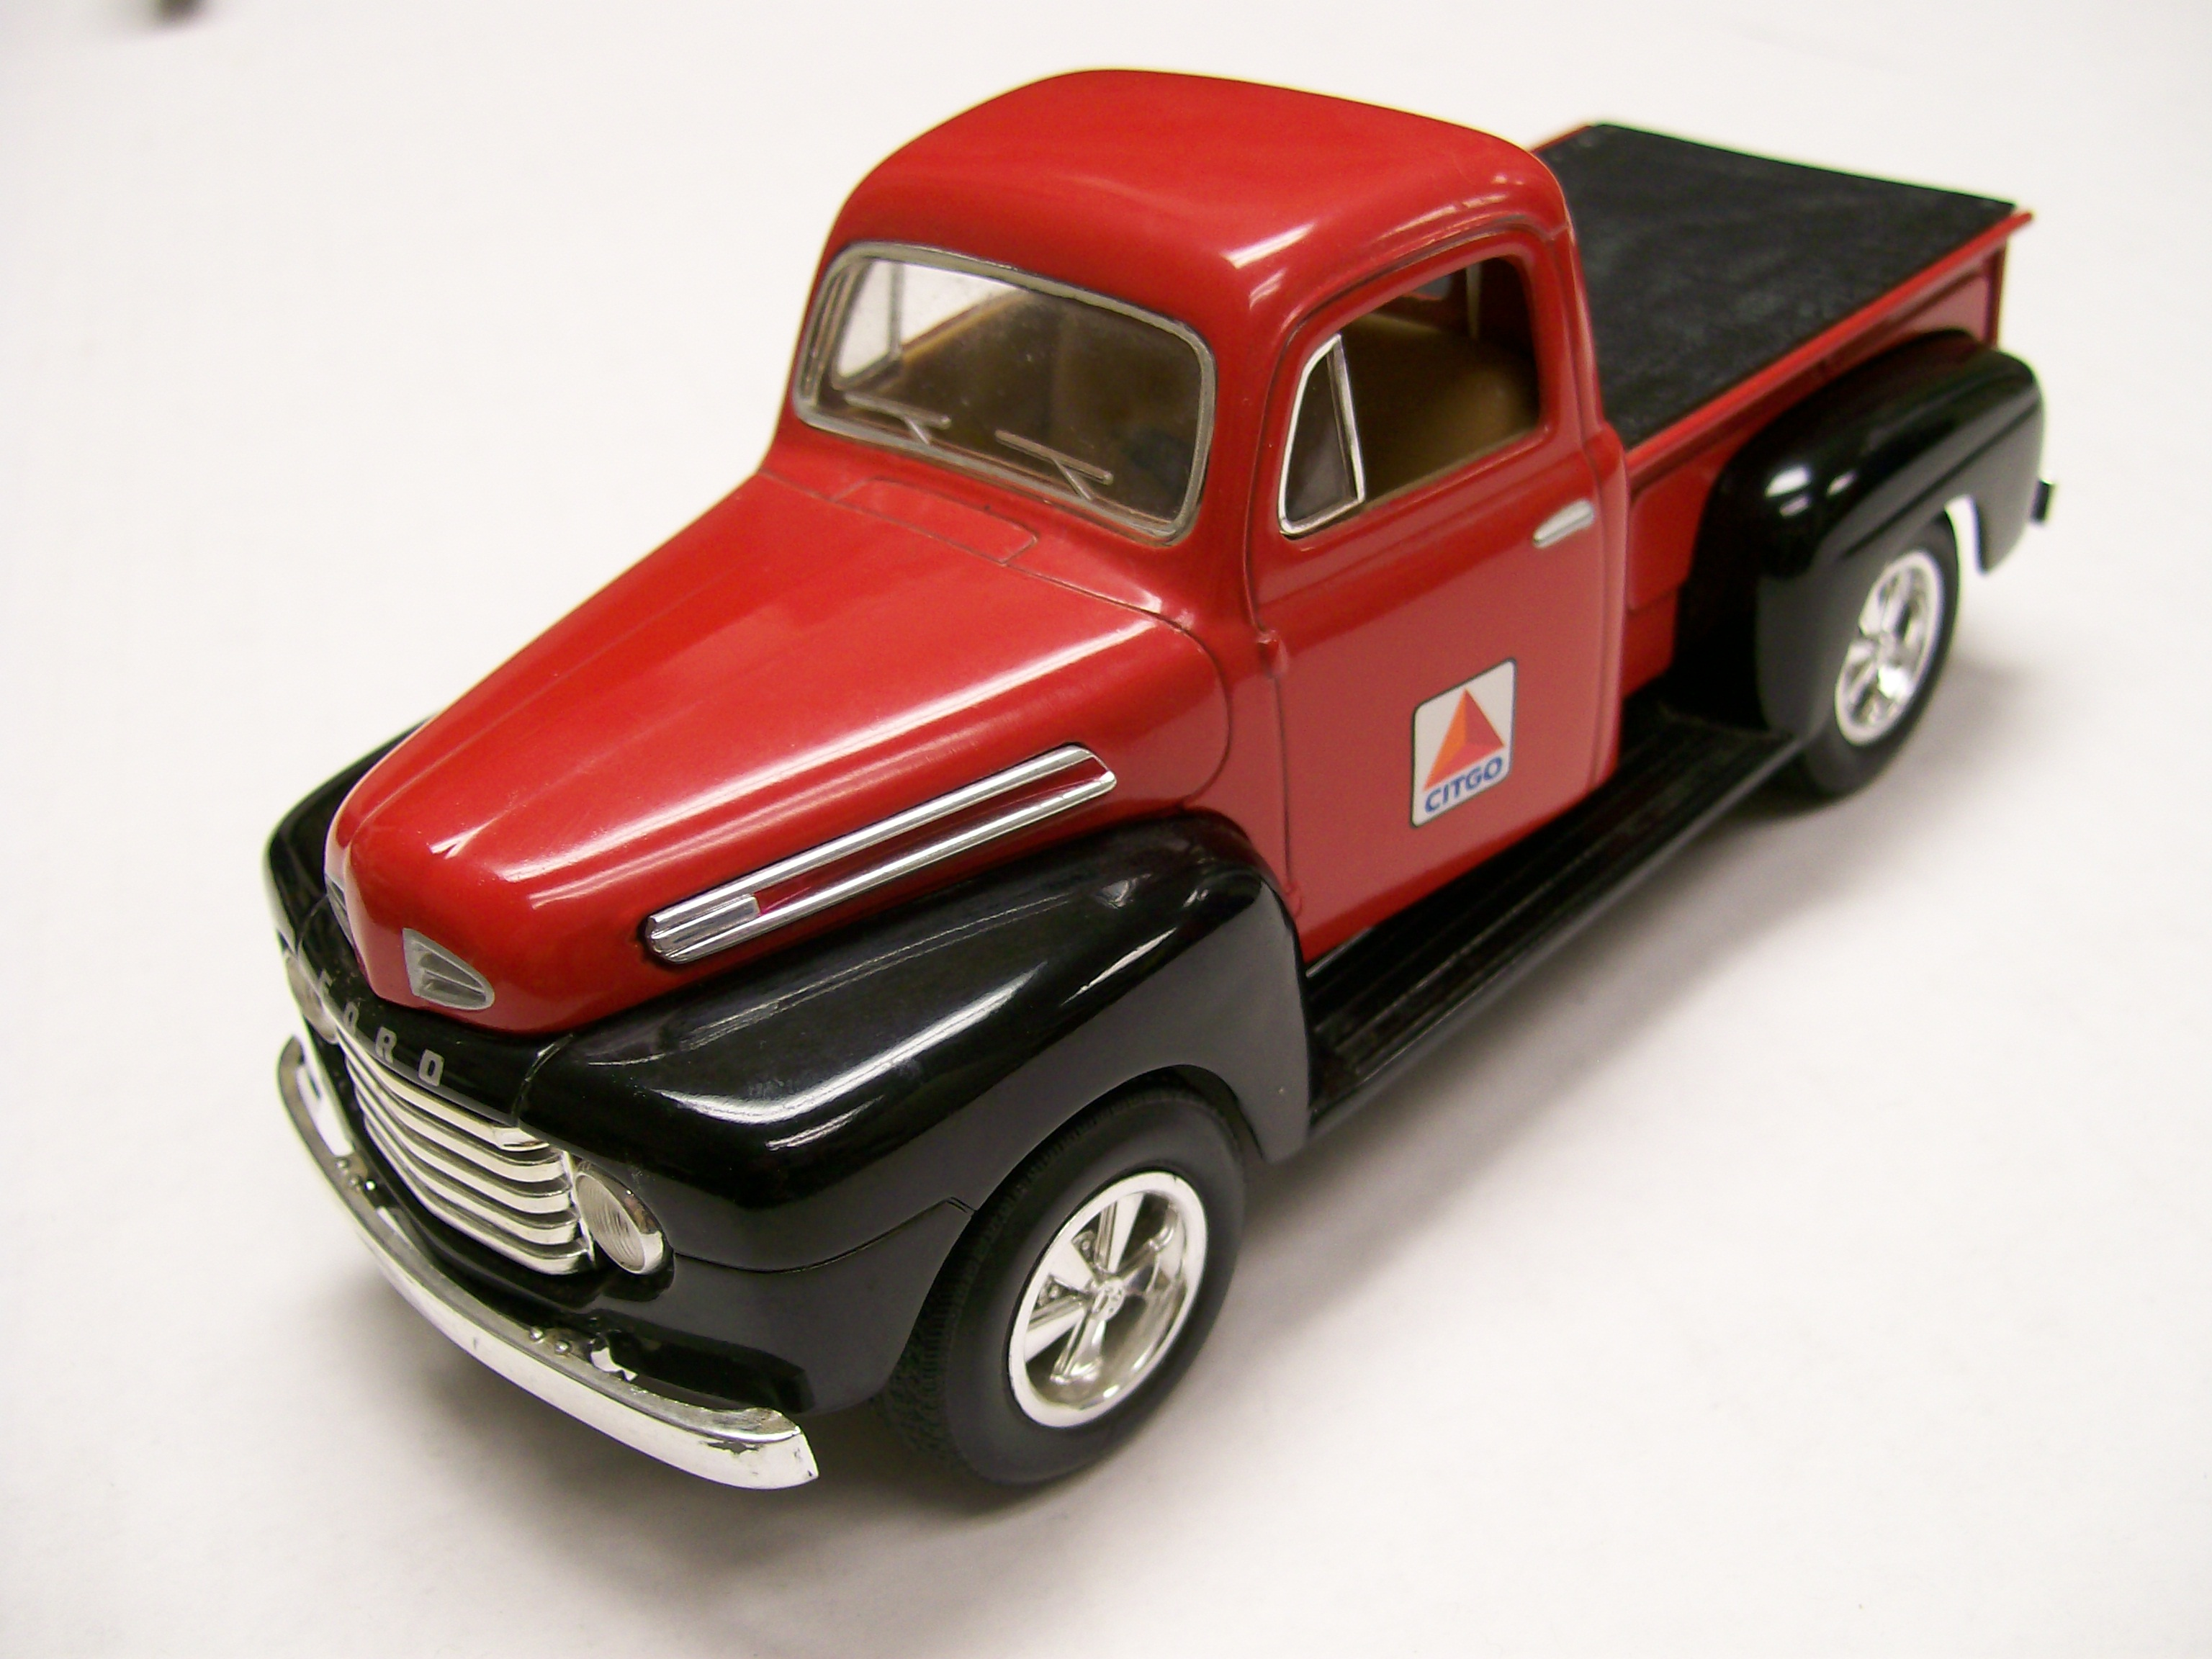 1948 Ford Pick-UpTruck Coin Bank Limited Edition-Citgo Advertise